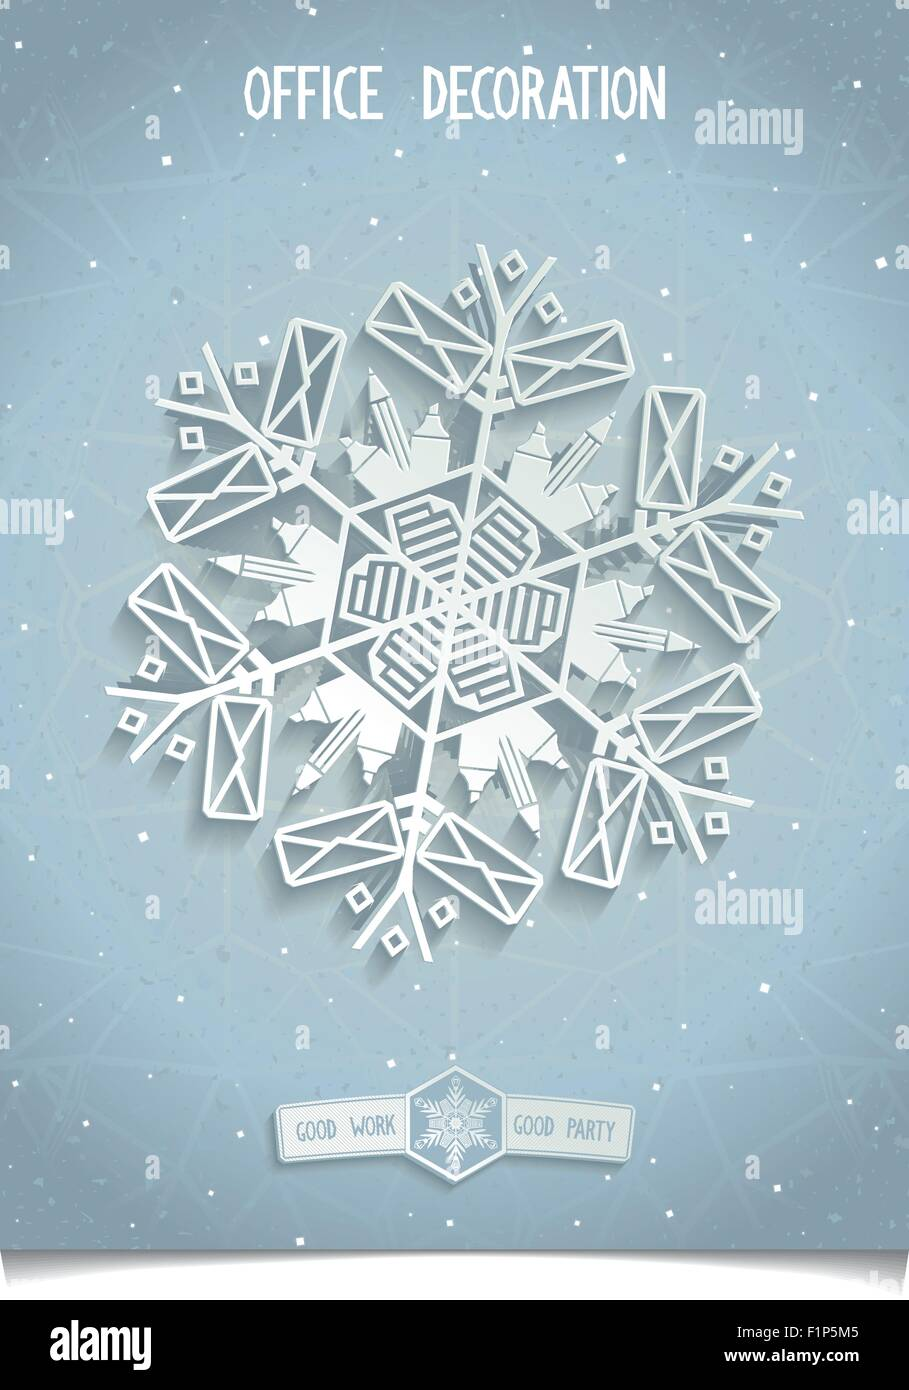 Christmas Decorations Snowflakes Making Of Office Supplies. Design Elements  For Corporate Identity For Your Office